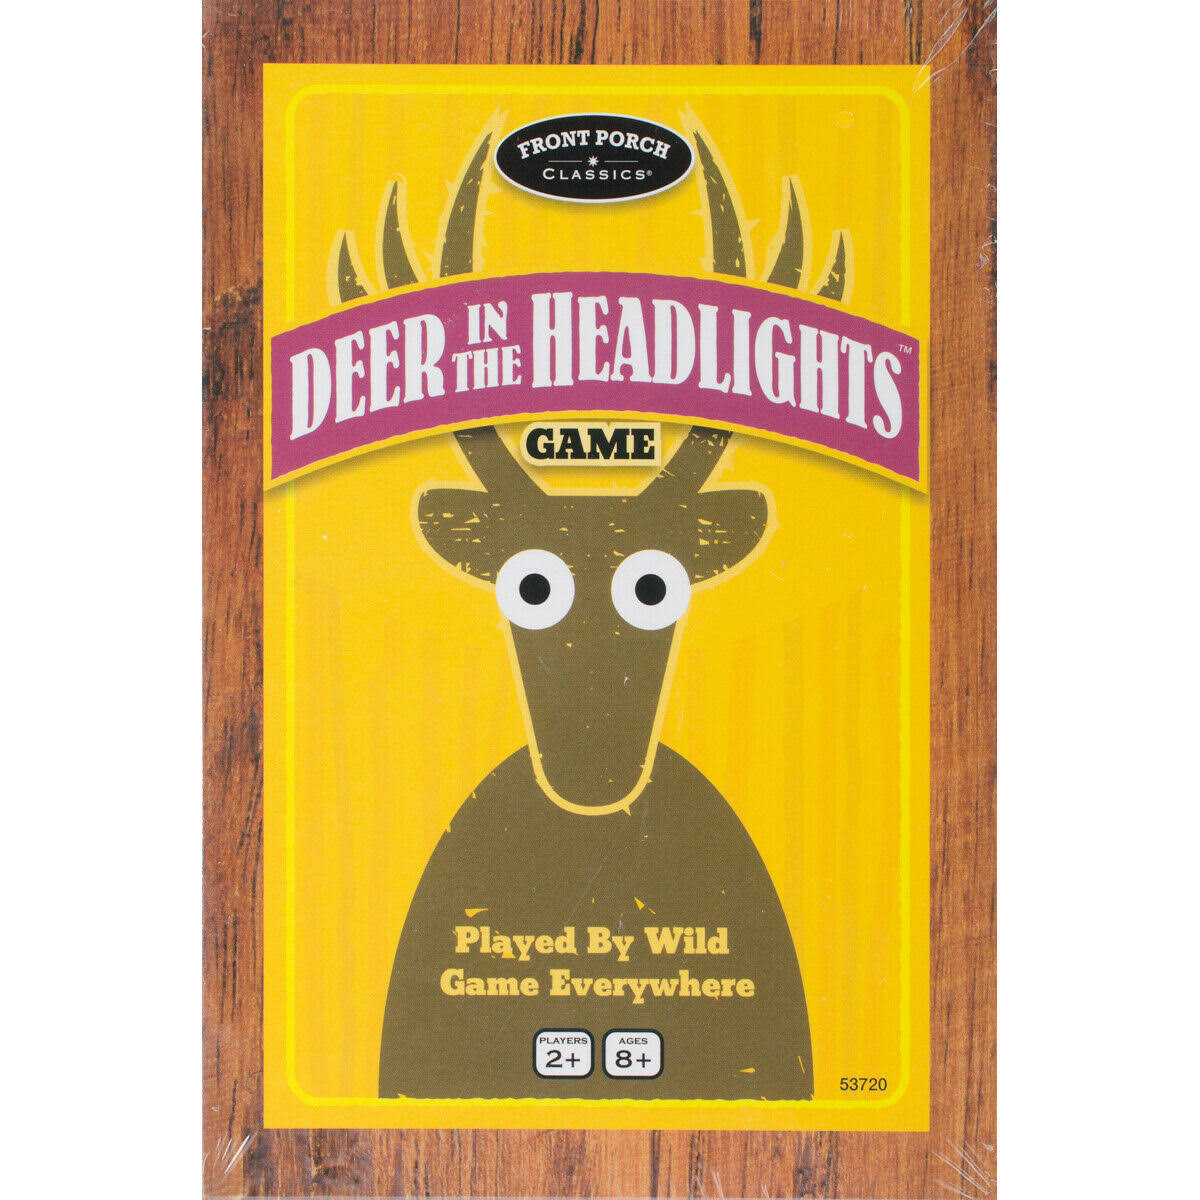 Front Porch Deer in The Headlights Card Dice Game